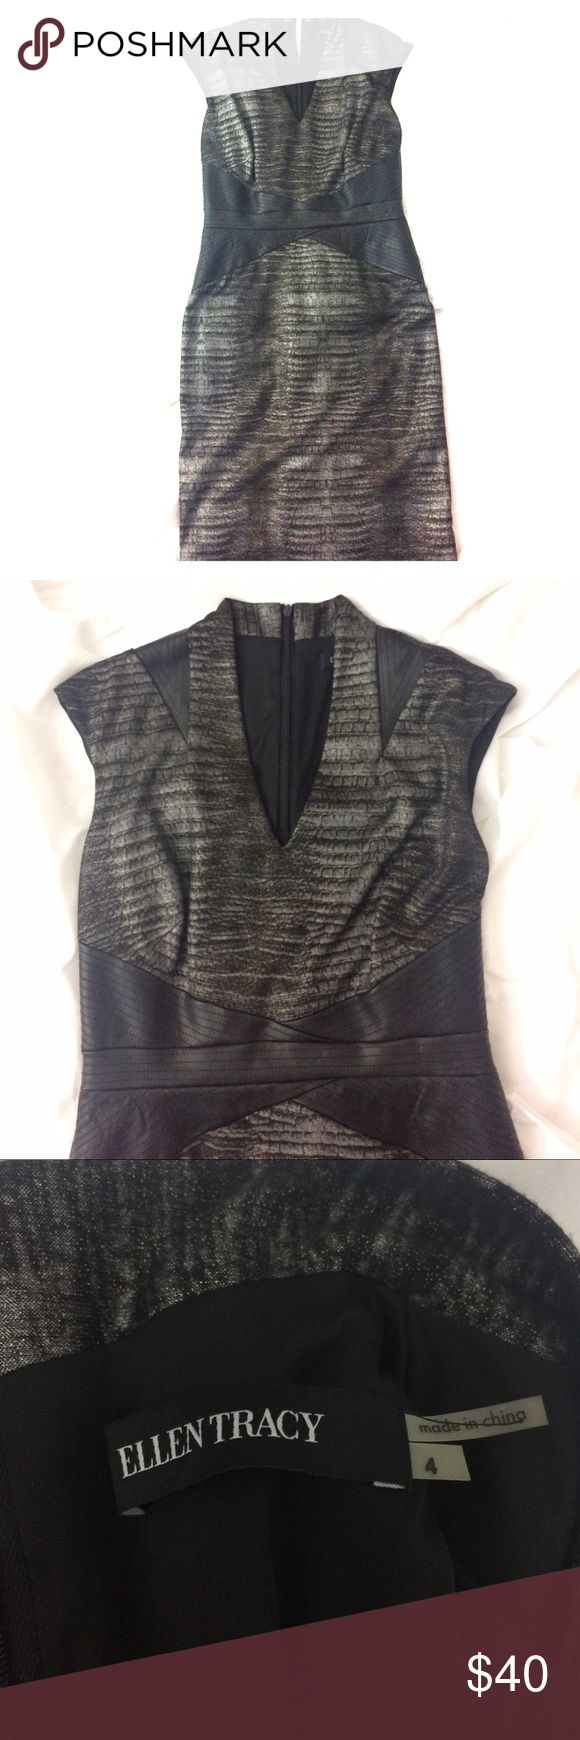 NWOT Ellen Tracy v neck dress with faux leather Never worn Ellen Tracy dress with v neck, cap sleeve and faux leather detail at waist and shoulders, fabric has gold metallic effect in the light but isn't glittery, open to offers! Ellen Tracy Dresses